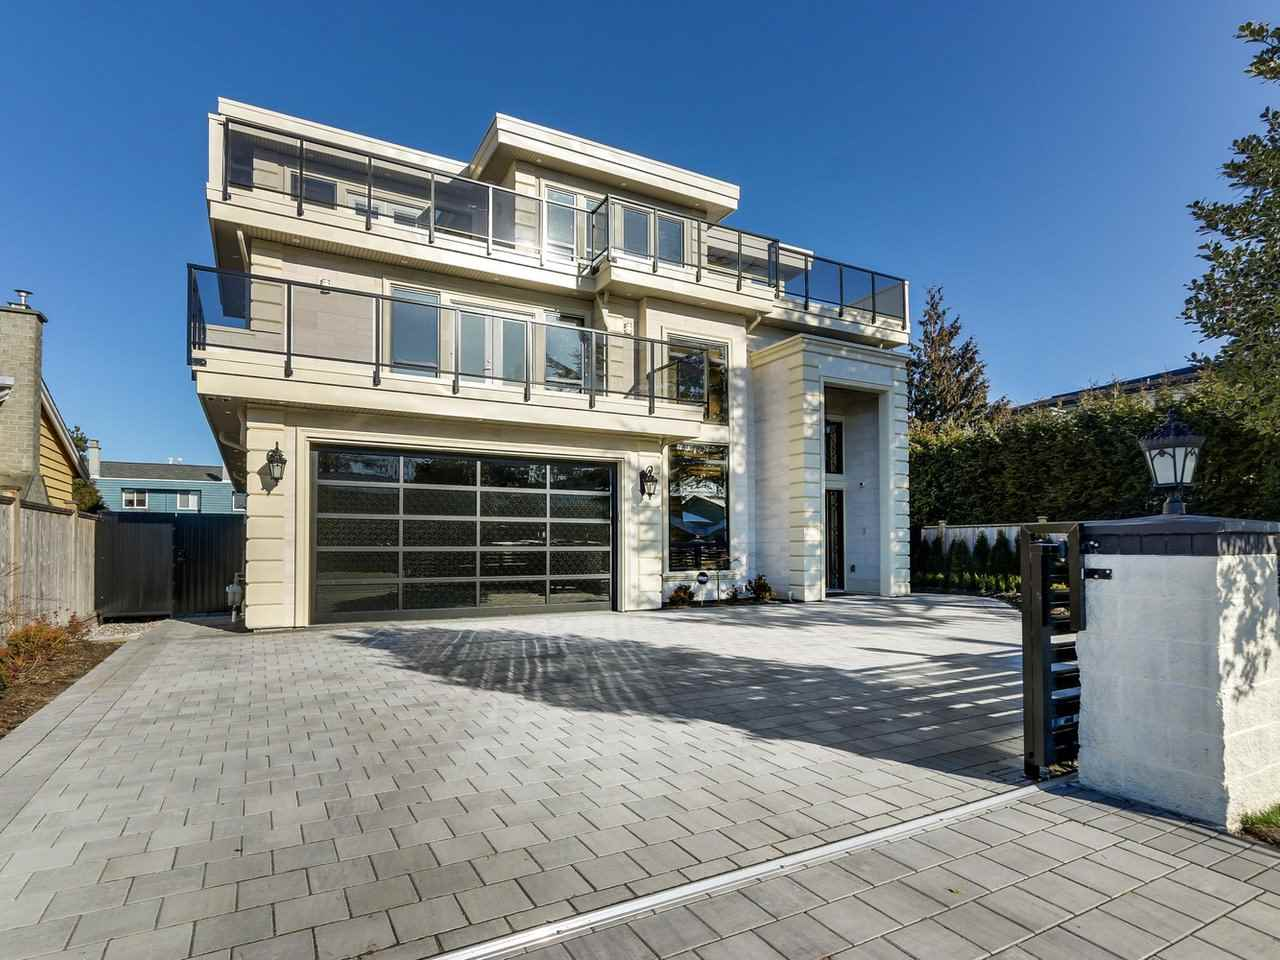 RARE!! This Contemporary 3 level home of 4895 sqft is located steps to Richmond Dyke. Spectacular OCEAN views from this truly Magnificent Luxury Family Residence situated on quiet end of the street. This exceptional Modern home of 6 bedrooms with 3 Master Bedrooms on 2nd & 3rd floor, 8 washrms, 2 Media Rms & Den offers a Stunning Open design with Spacious rooms, Large windows with WATER & Mountain View from the FOUR Large Front & Back Decks. GOURMET Kitchen & large WOK Kitchen too. Top of the Line Stainless Steel appliances. A/C, HRV & Hot water Radiant heating on all 3 floors. Luxury features including Security System with 6 HD Night Vision, Control-4 system with Integrated Lighting, Heating, Music & Garage Door. 2-5-10 New Home Warranty. Schools: Dixon Elementary and Hugh Boyd Secondary